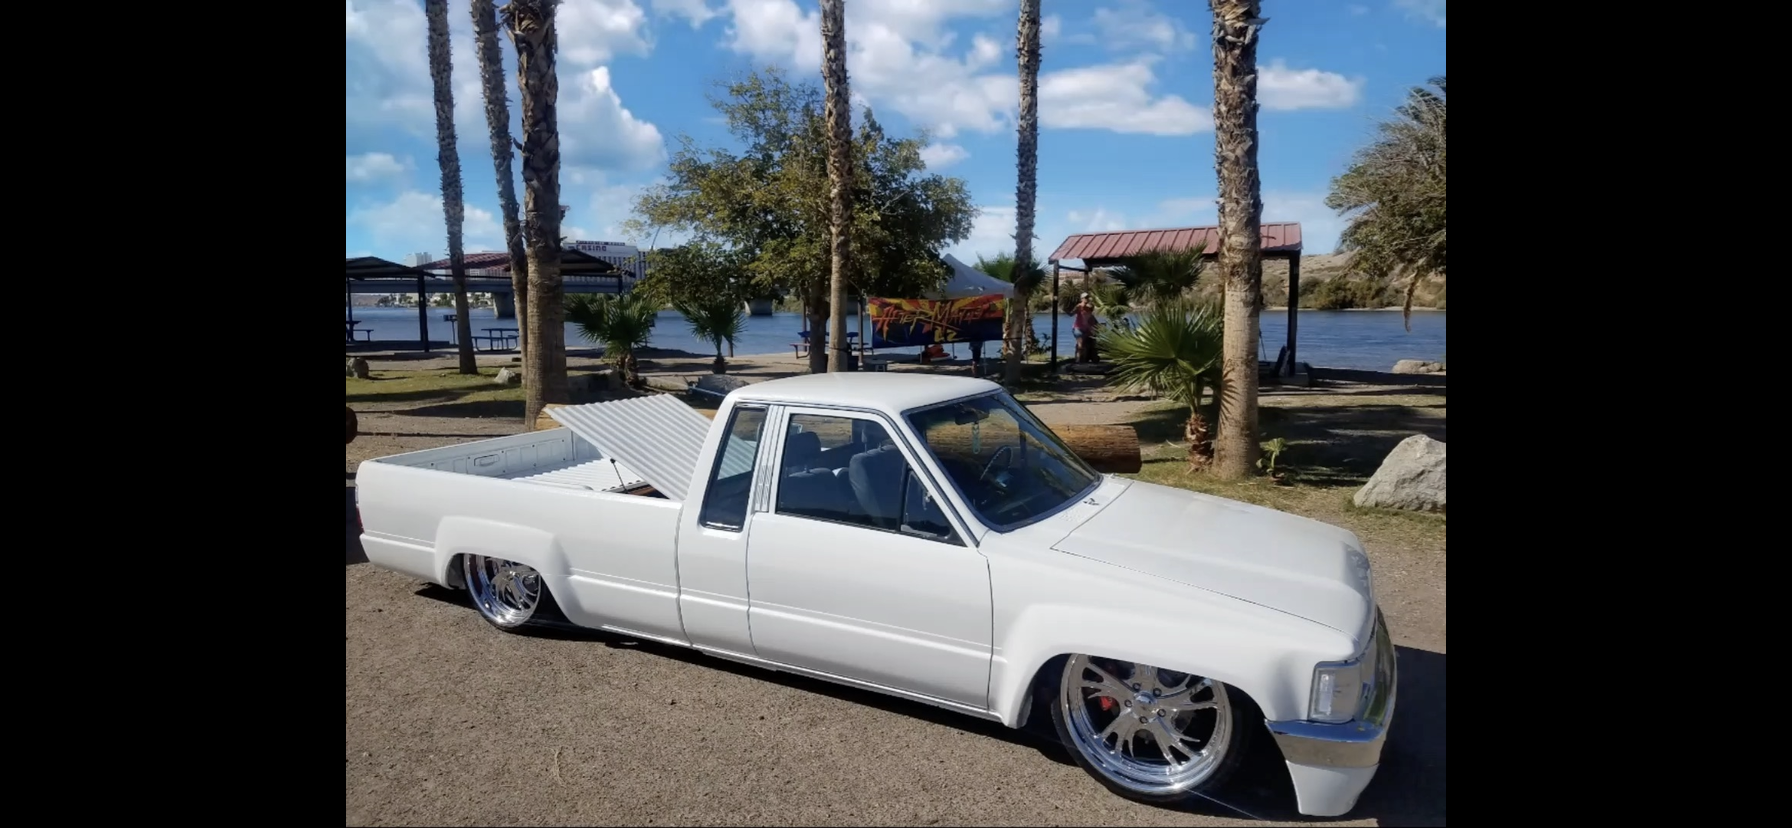 1988 Toyota Xtra cab long bed pickup